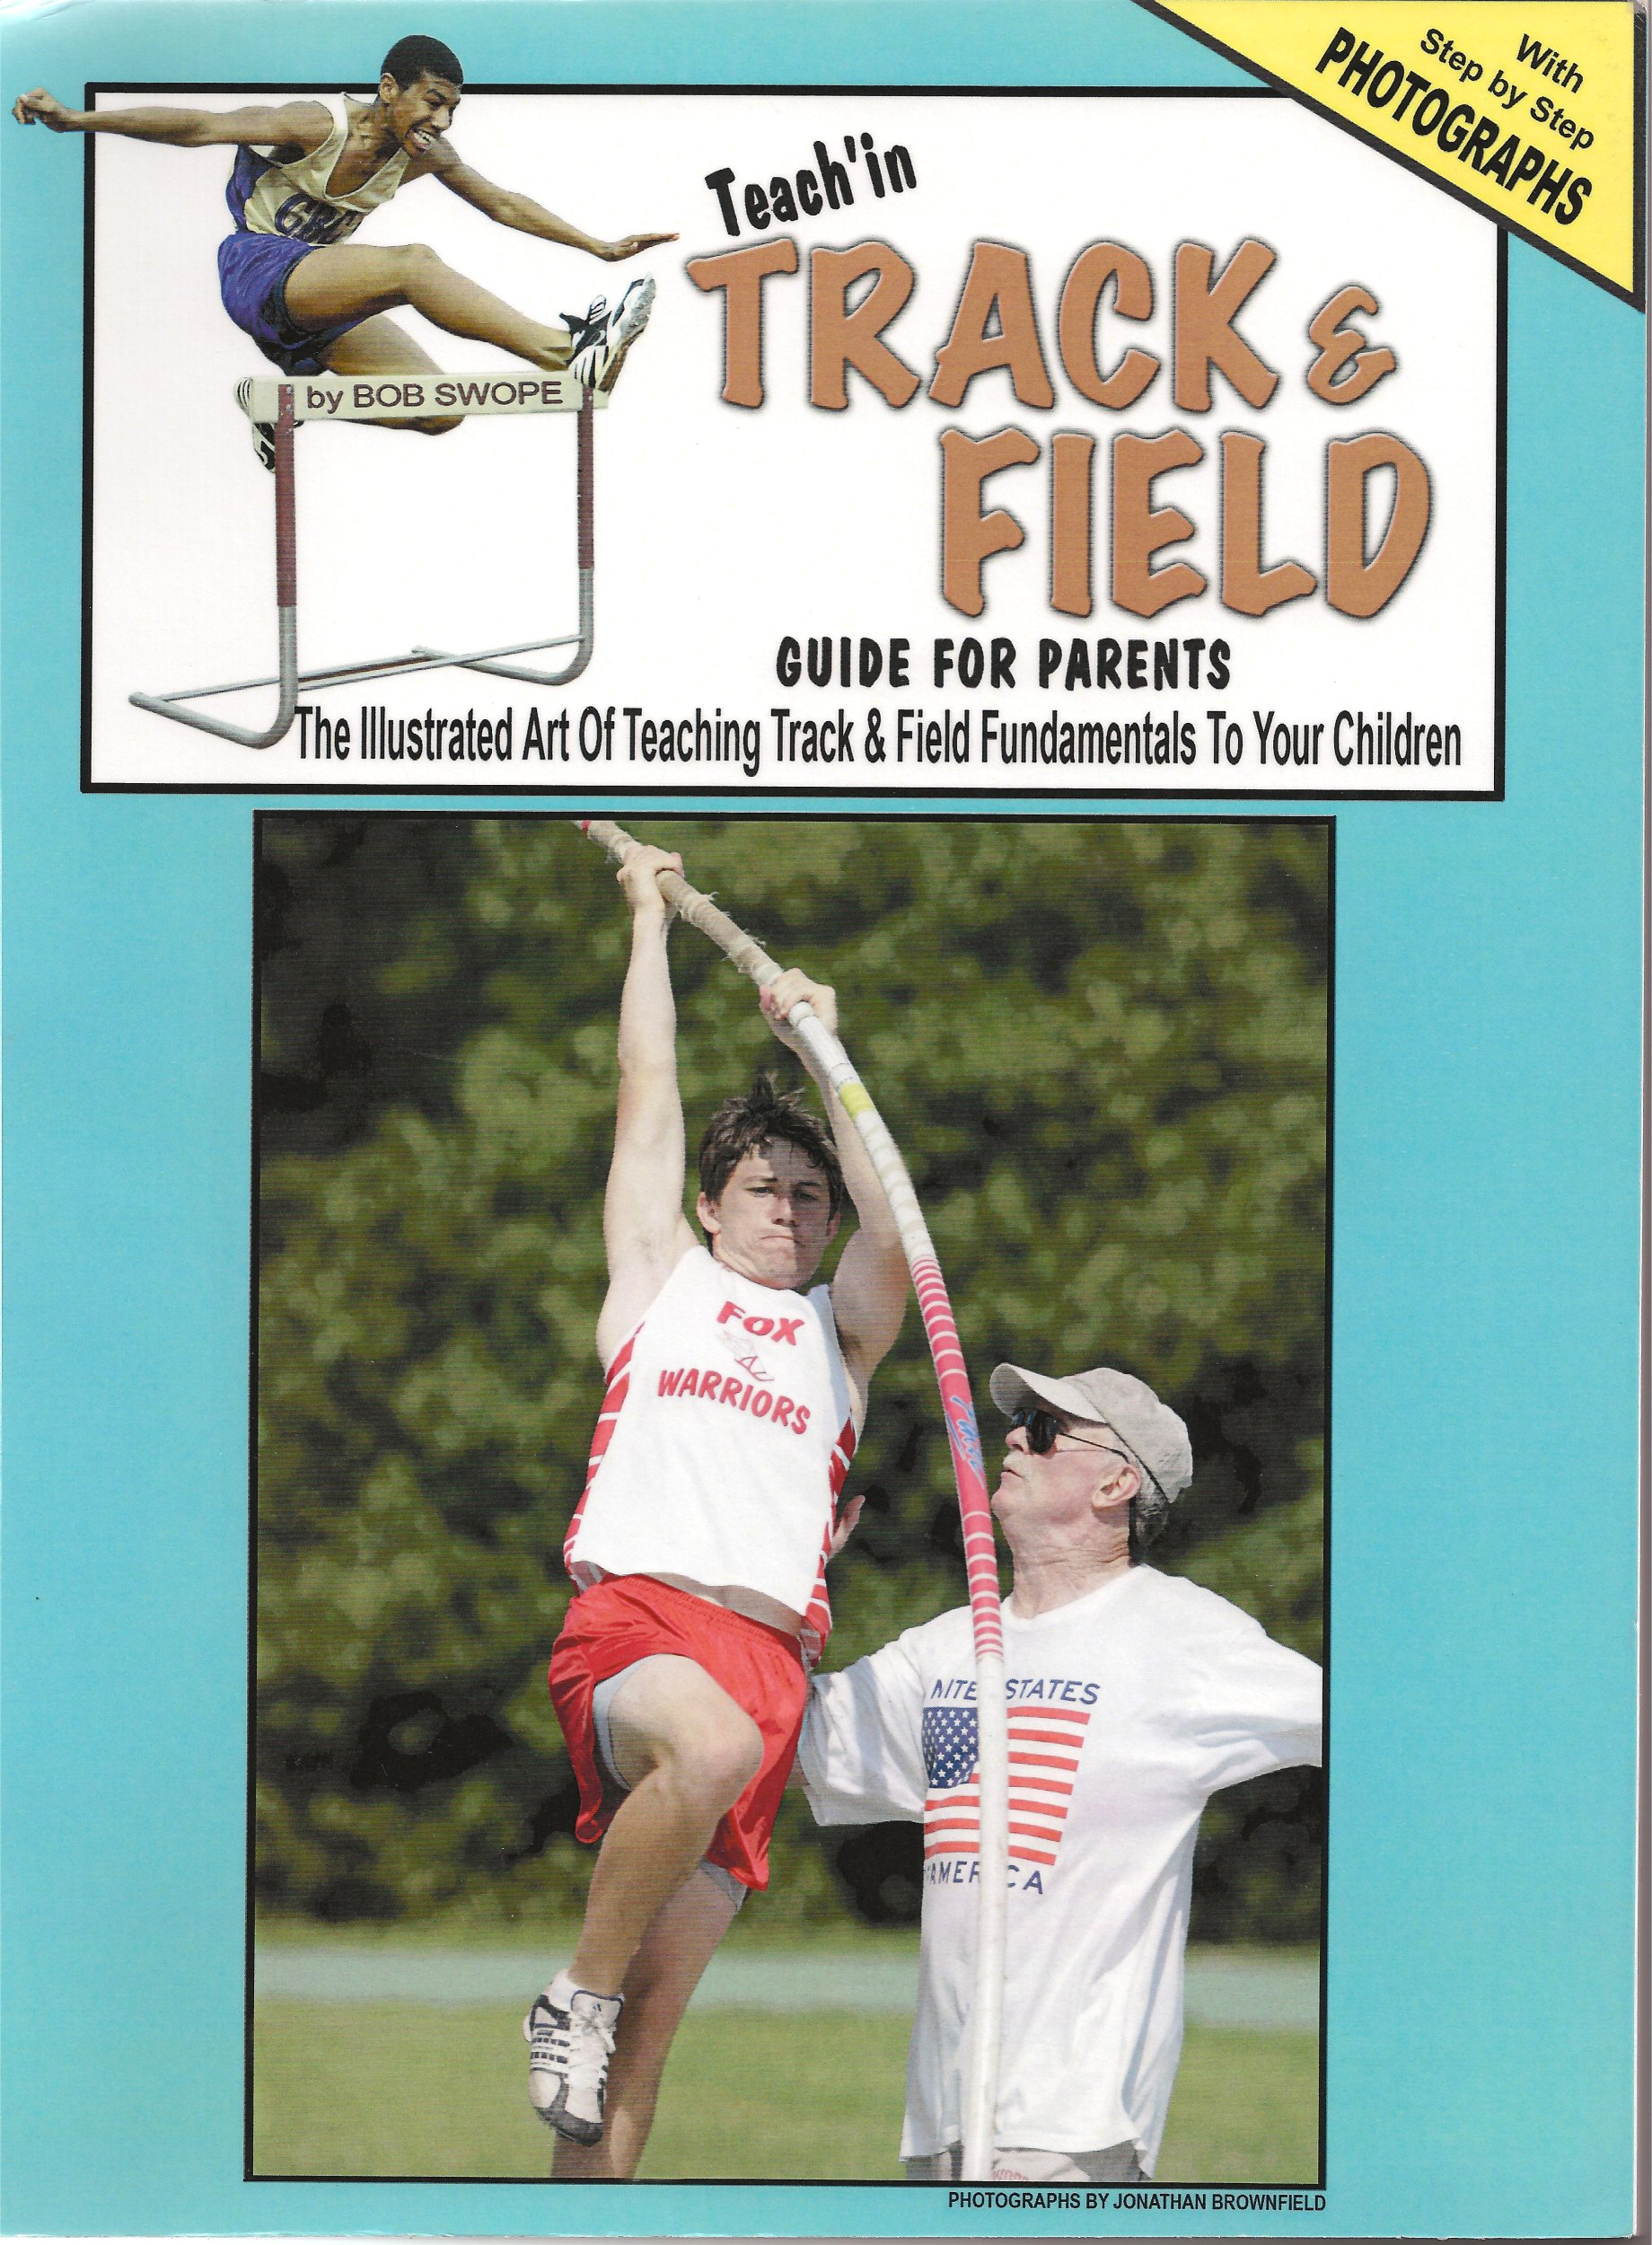 Teachin Track & Field First Edition Guide for Parents (Teach'n)